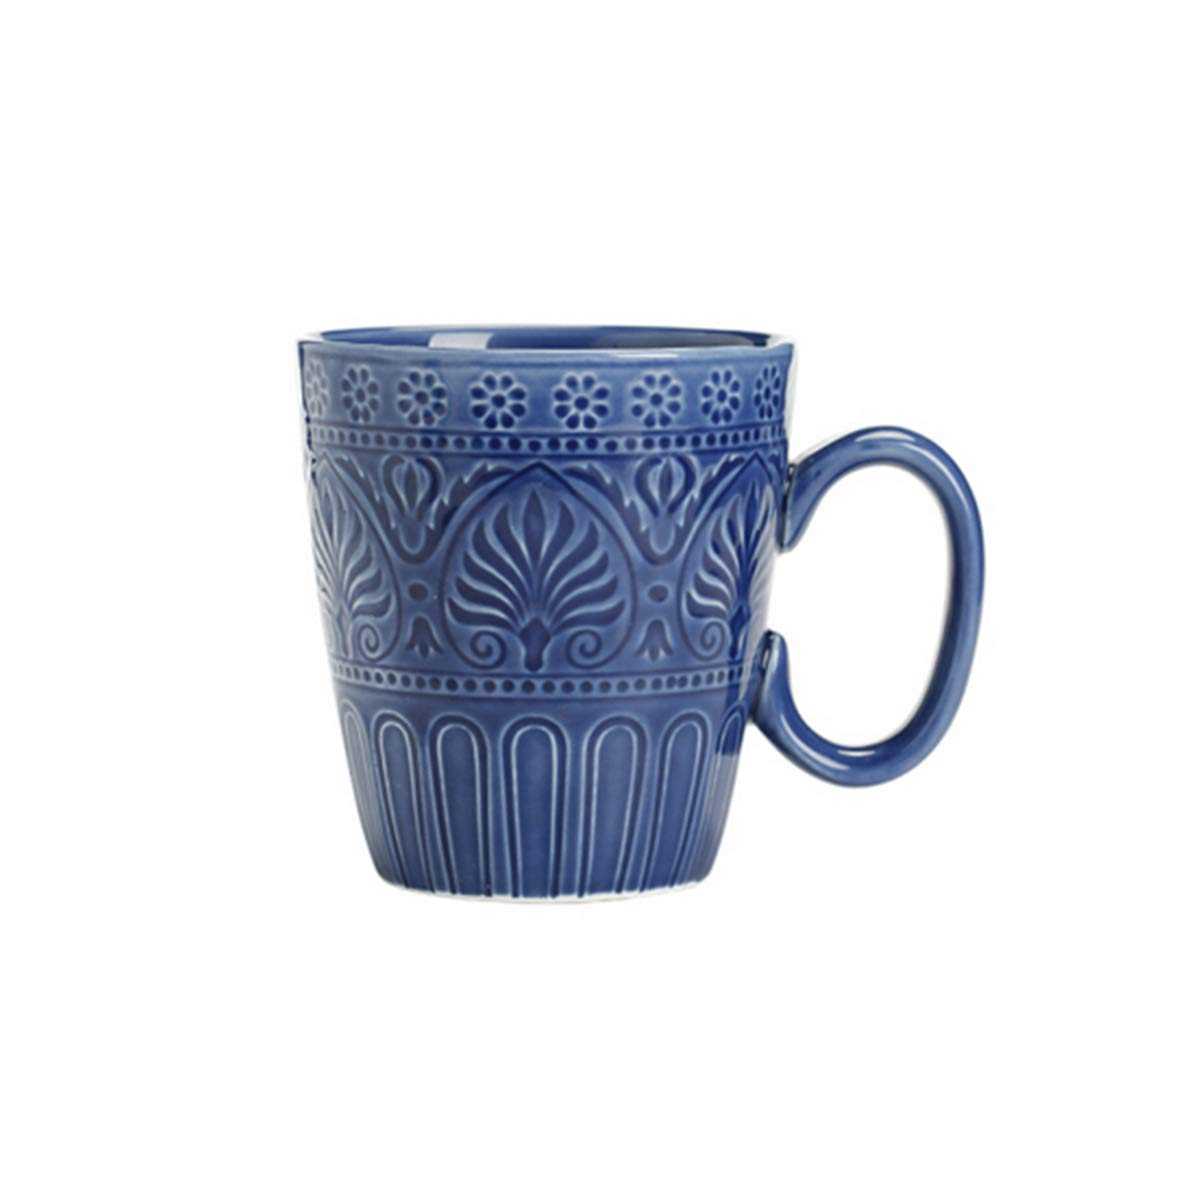 Shengshihuizhong Blue Flame Personality Cup Ceramic Cup Milk Cup Coffee Cup Office Cup (High Temperature Porcelain - Health Glaze) Drinking Cup